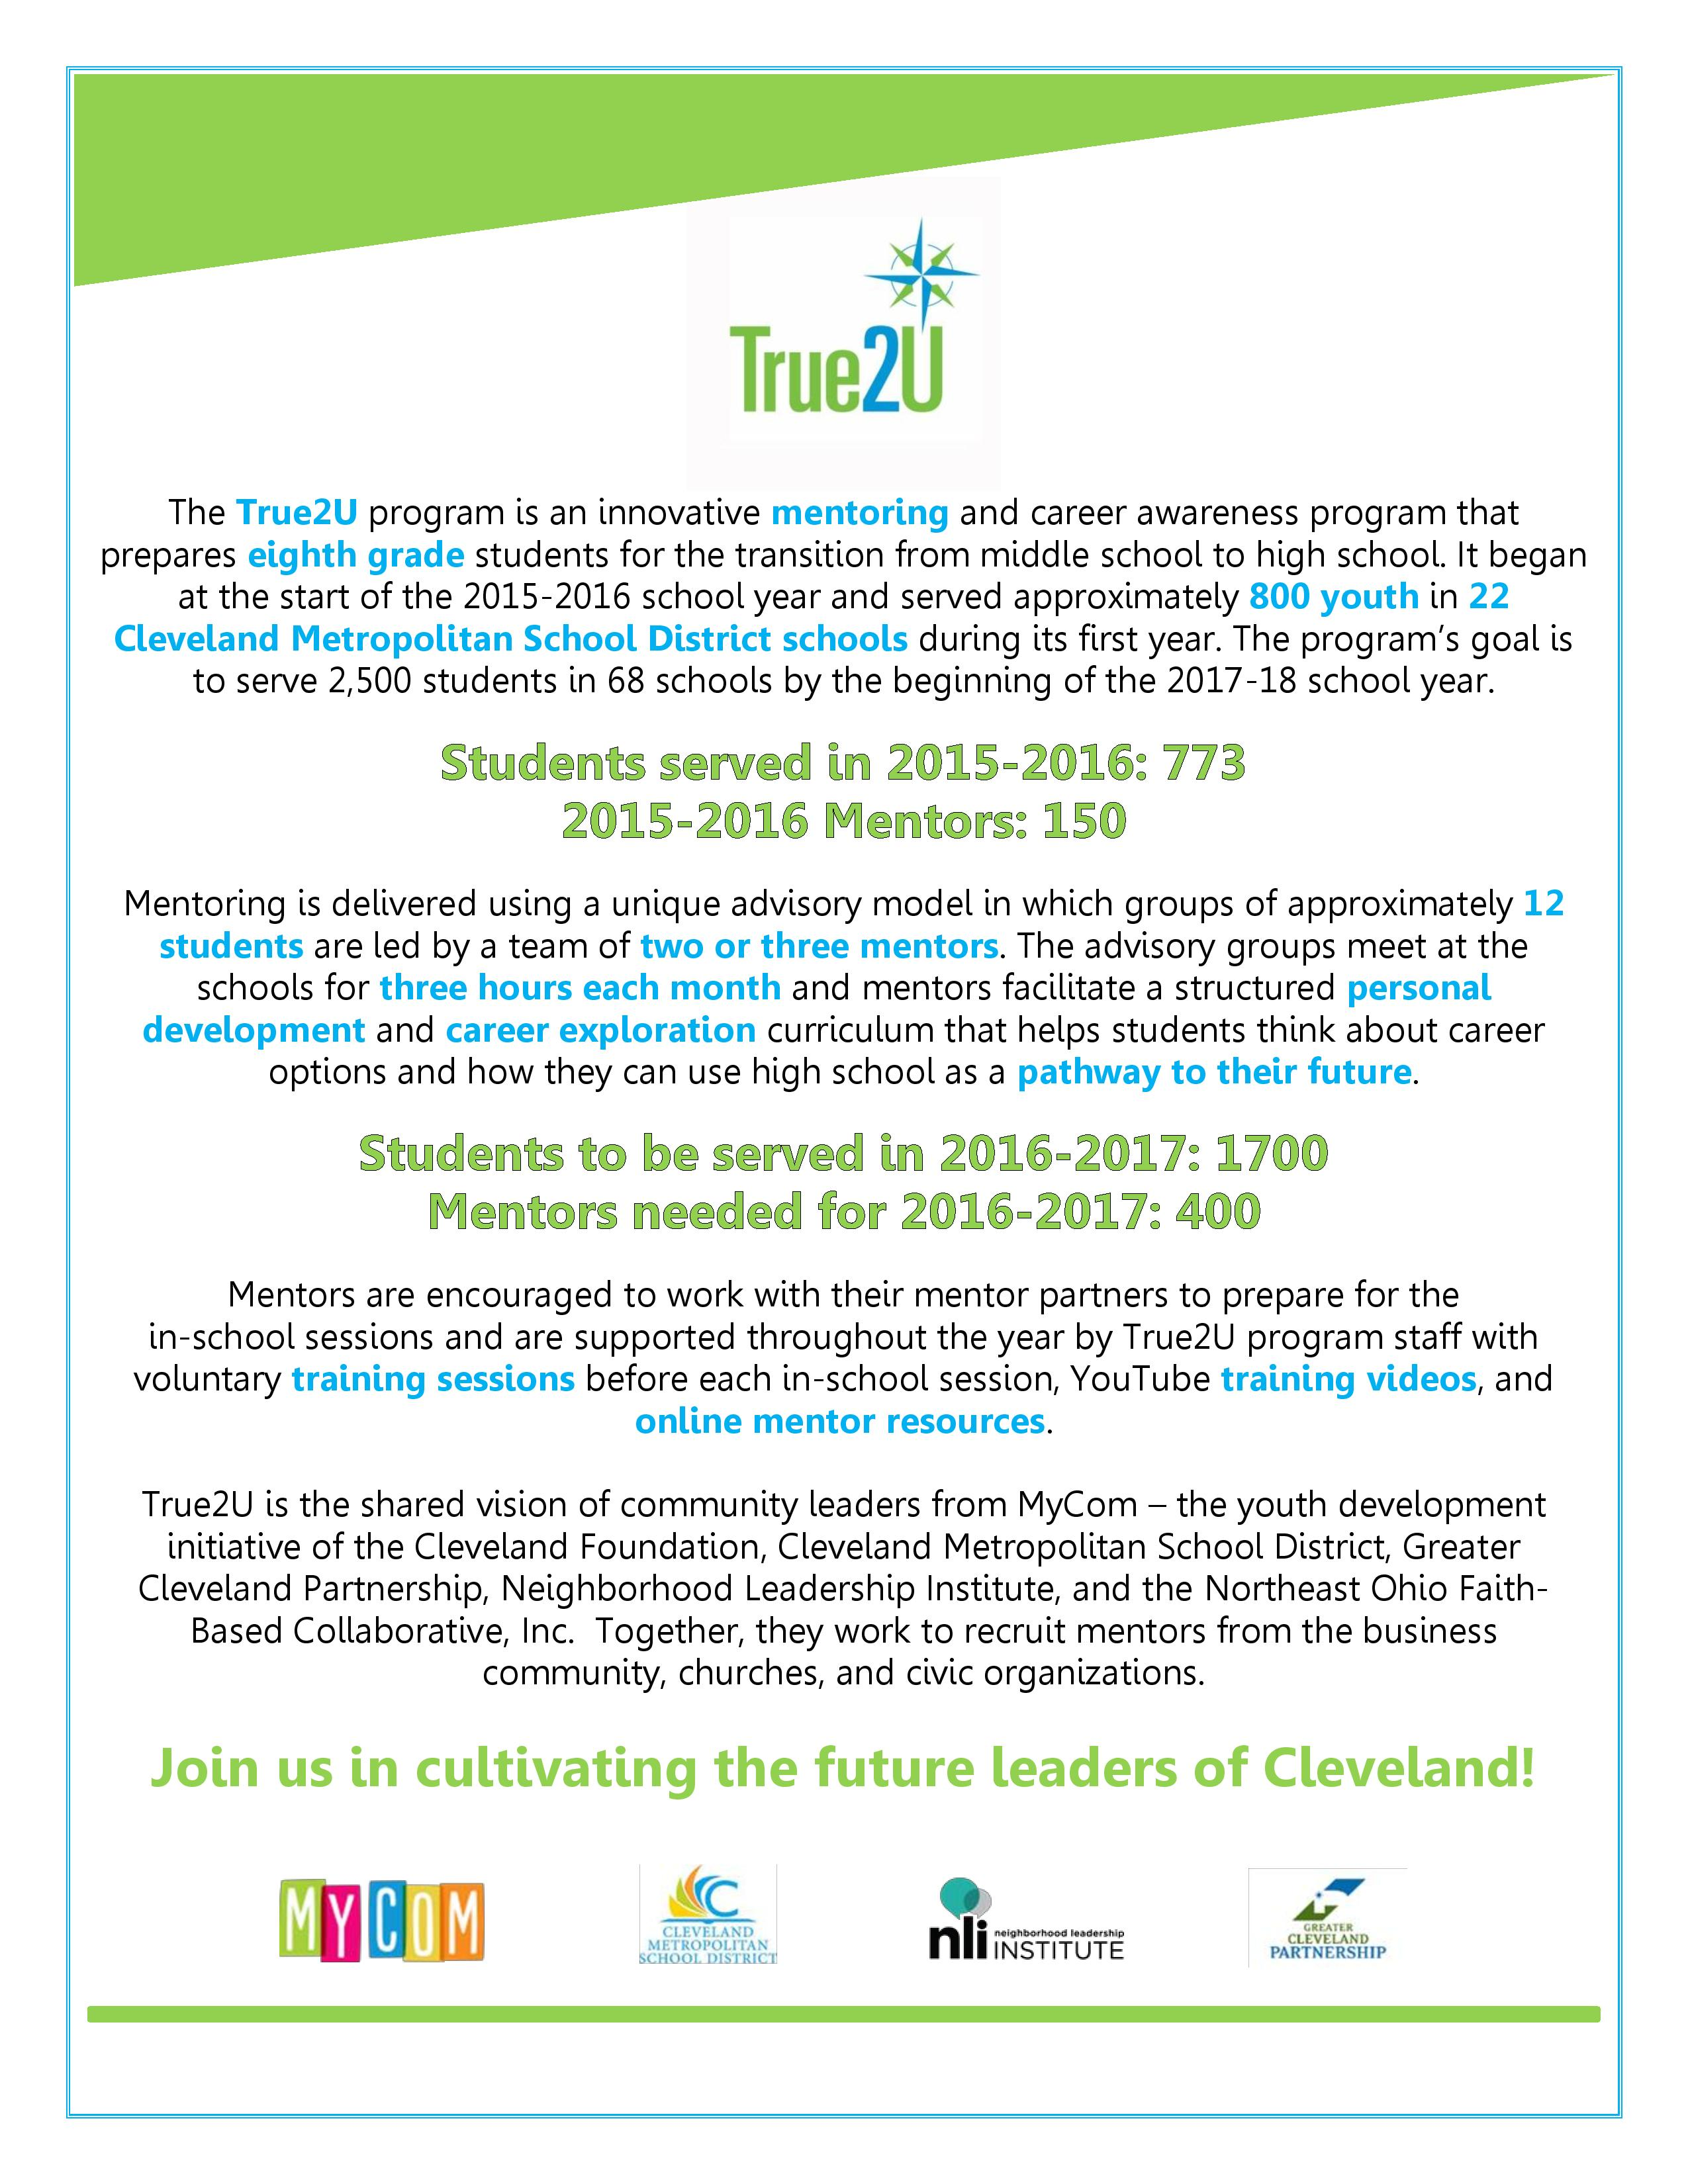 Become a Mentor with the Cleveland Metropolitan School